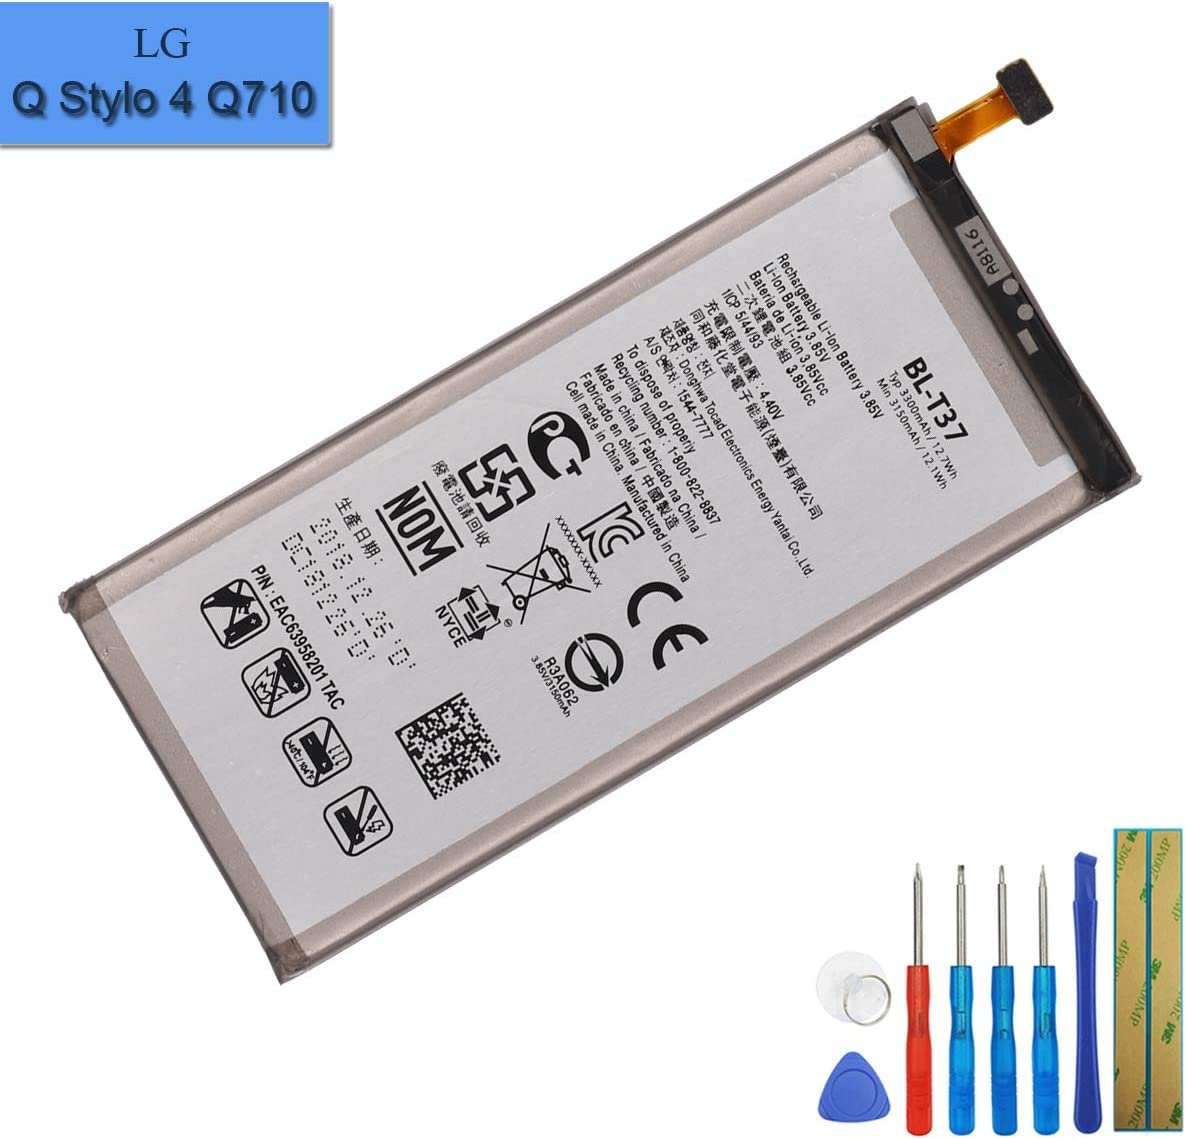 New Replacement Battery BL-T37 Compatible with LG Q Stylo 4 Q710 Q710MS Q710CS Q8 2018 EAC63958201 with Tools